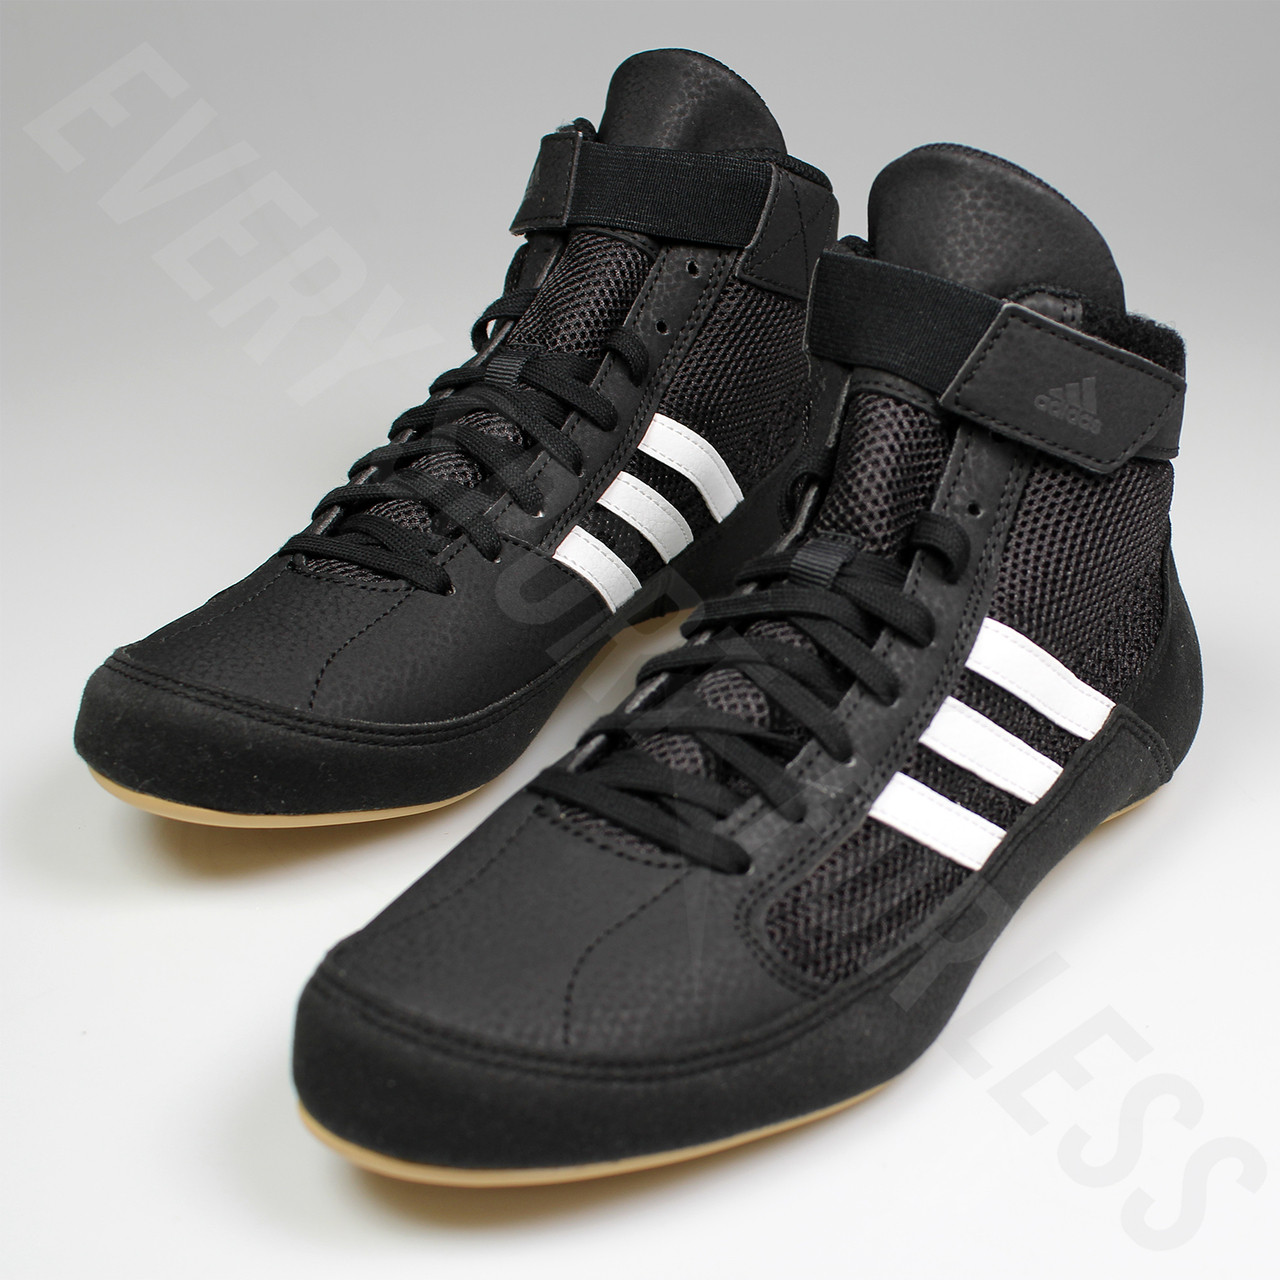 reputable site 9fde6 ccead ... Adidas HVC 2 Mens Wrestling Shoes AQ3325 - Black   White ...